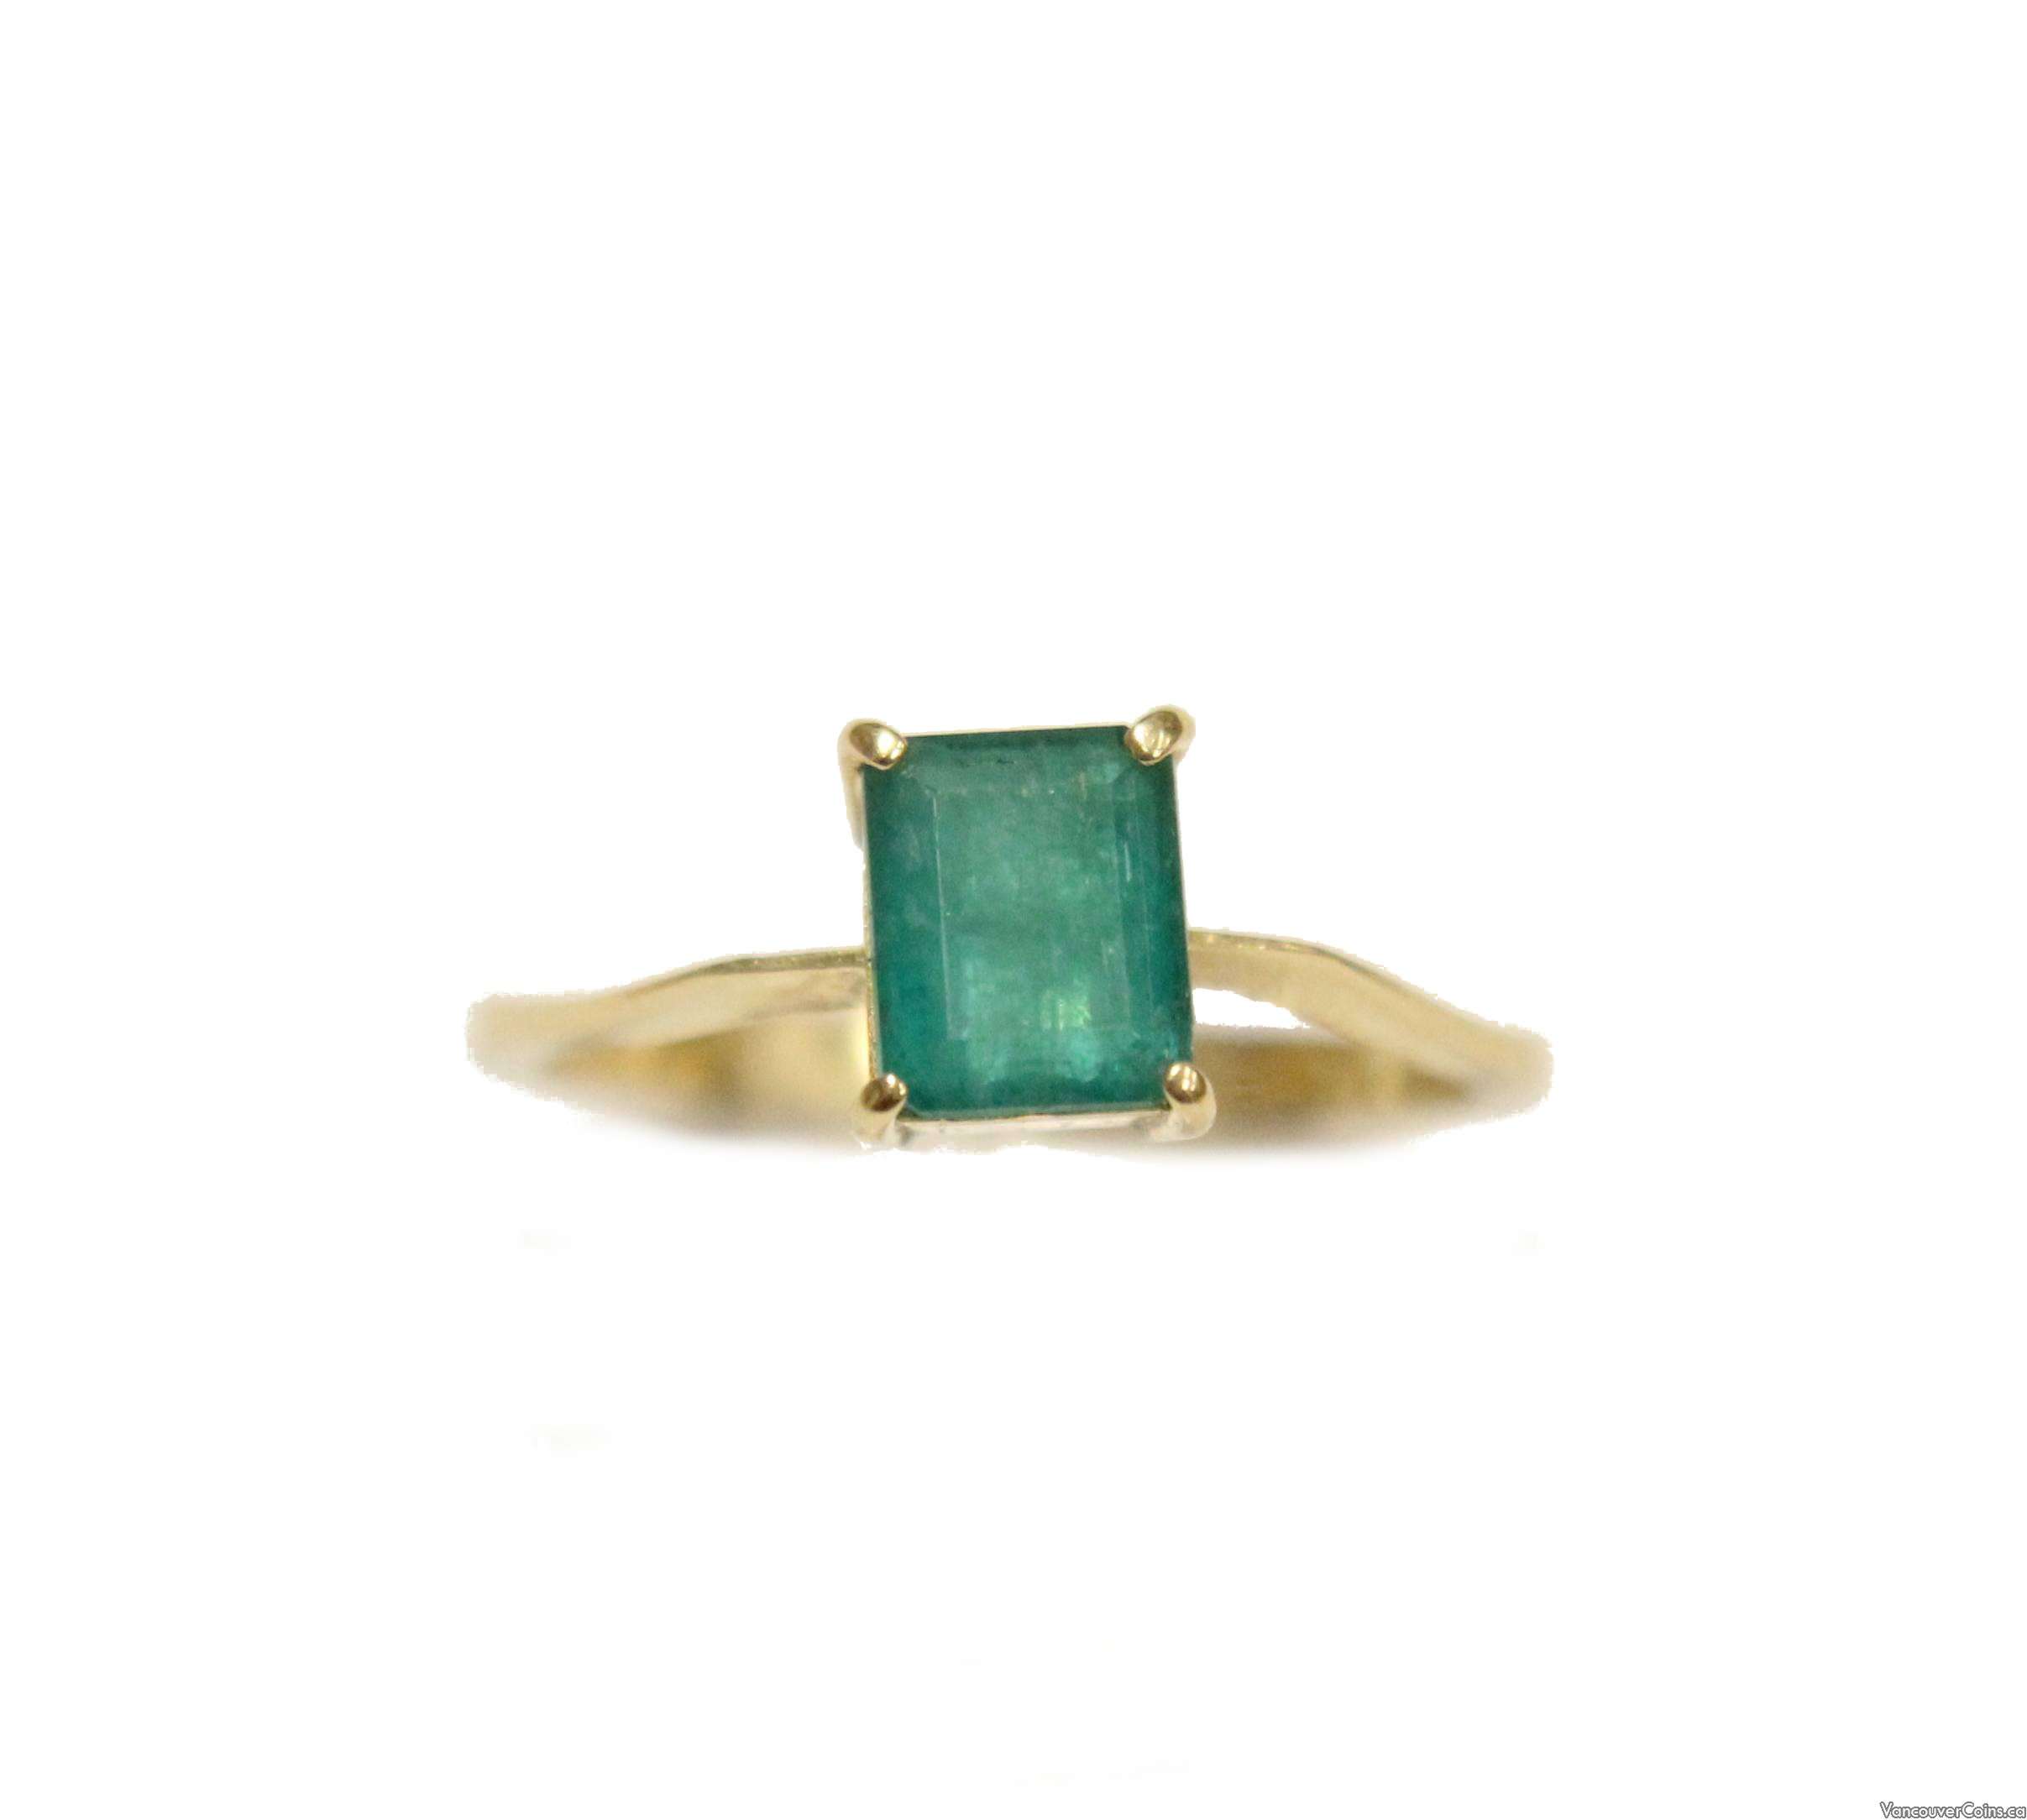 18K Yellow Gold .70 carat Solitaire Emerald Ring